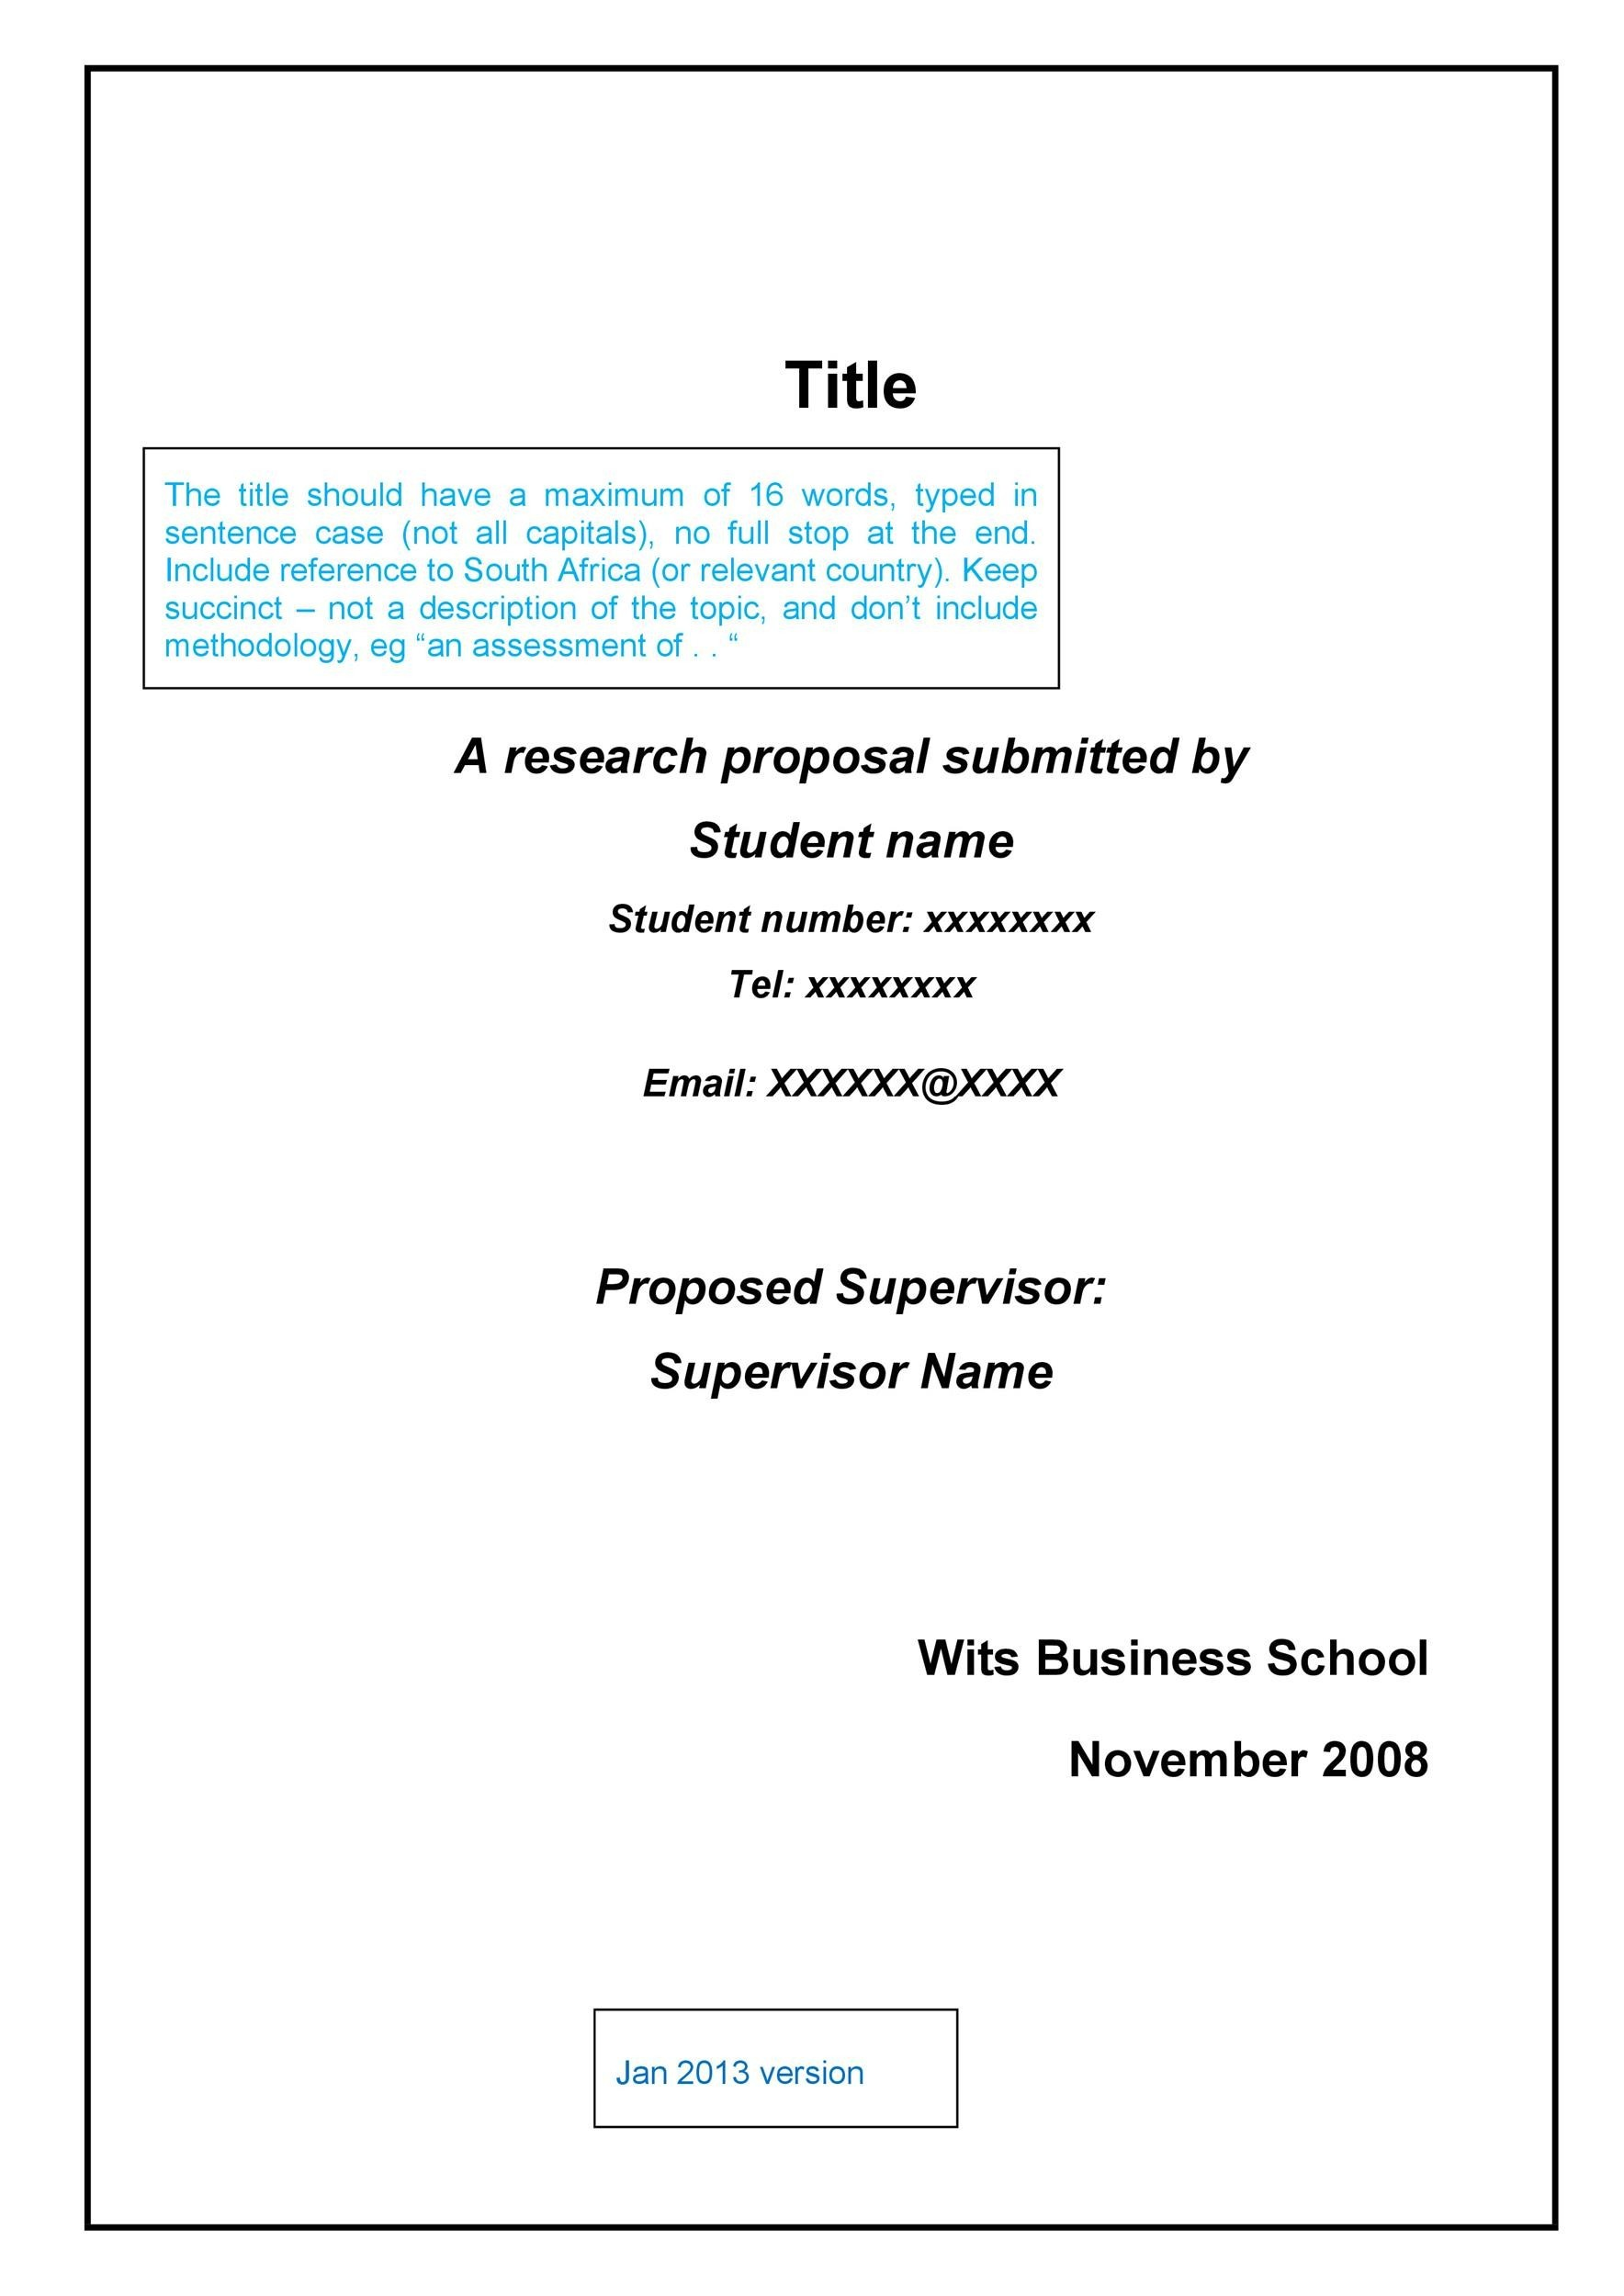 Choose From 40 Research Proposal Templates & Examples 100